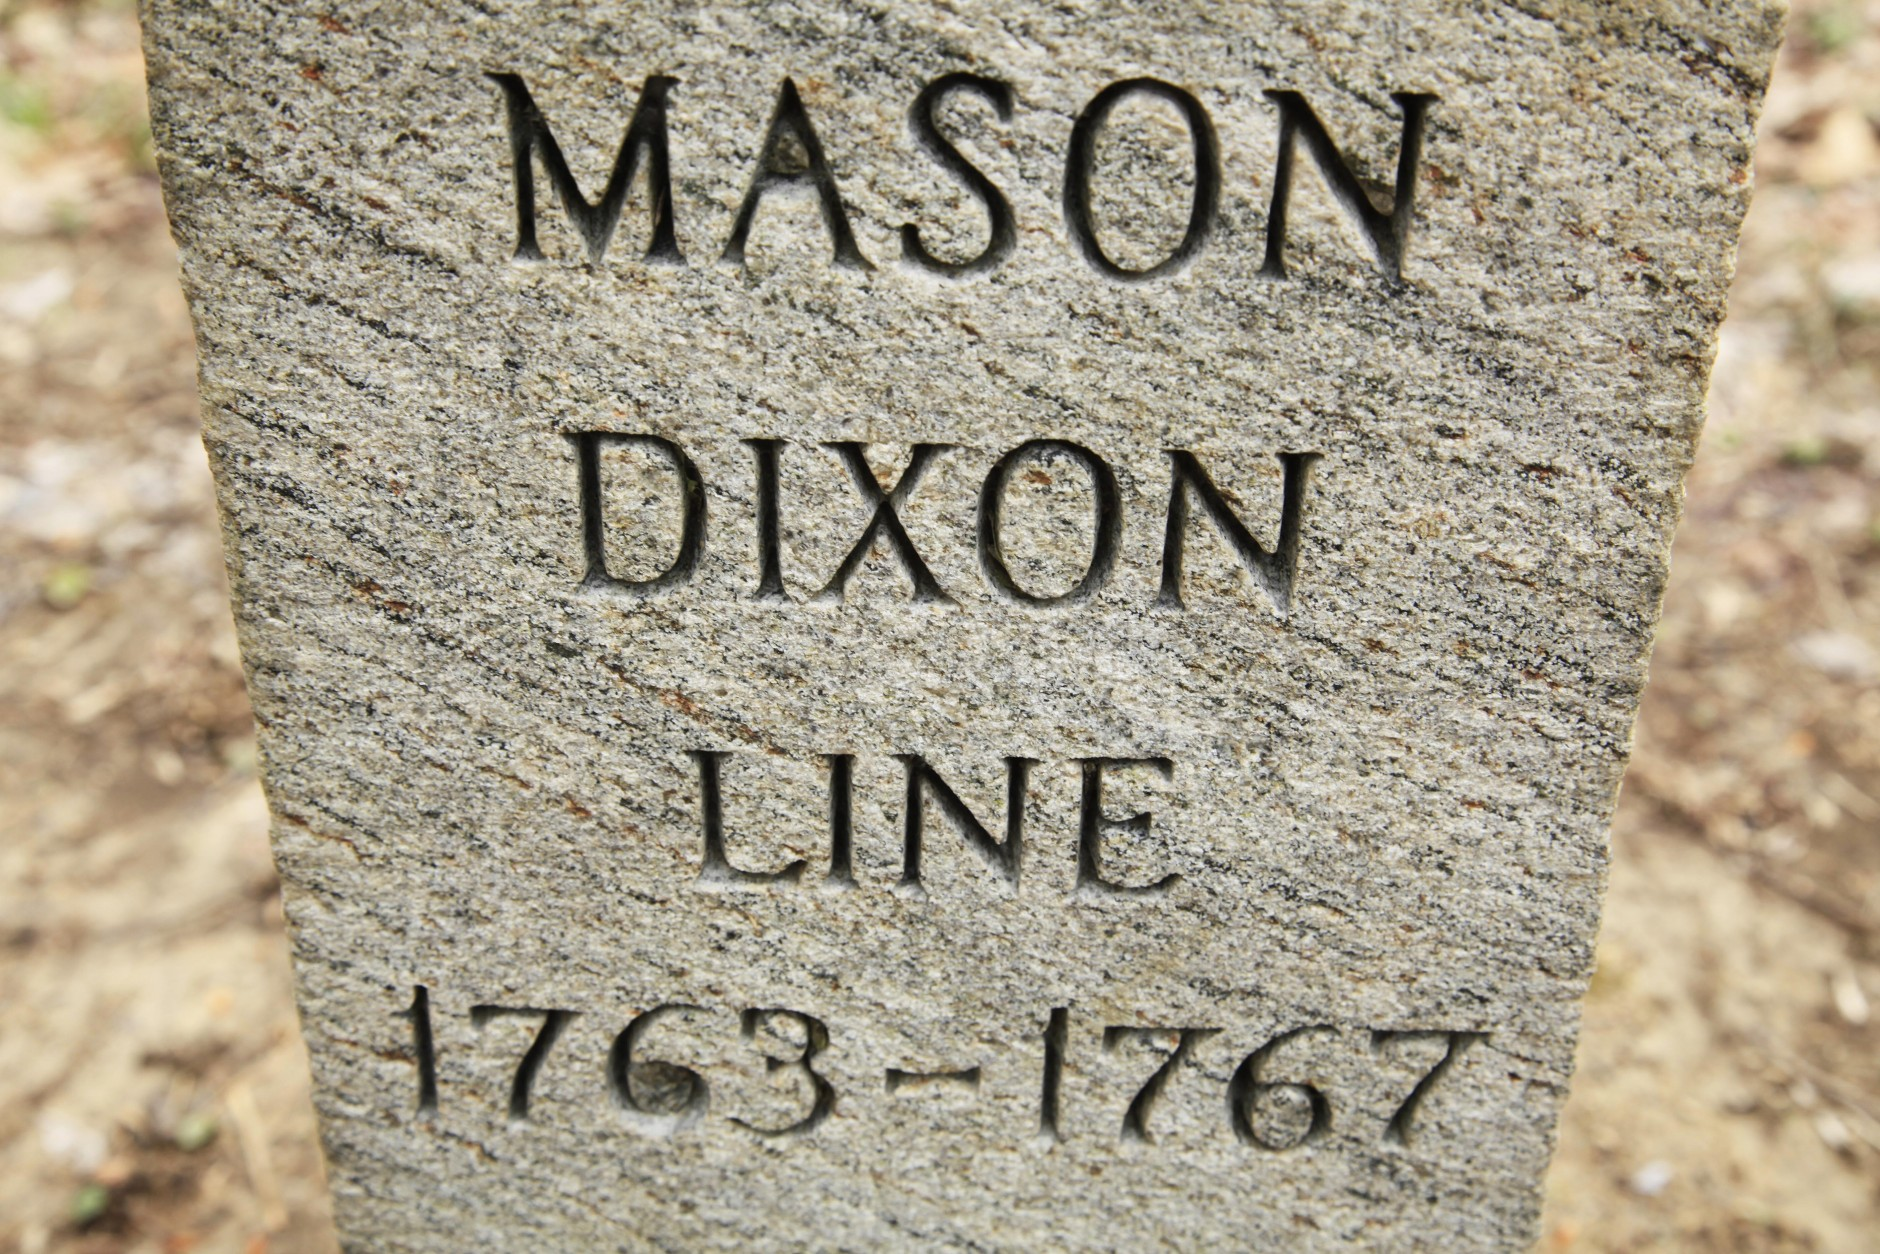 In this Friday, April 15, 2011, photo  in Newark Del., shown is a post marking the base point in the survey of Charles Mason and Jeremiah Dixon.  Mason and Dixon began their survey a century before the Civil War to settle a border dispute between Pennsylvania and Maryland.  (AP Photo/Matt Rourke)